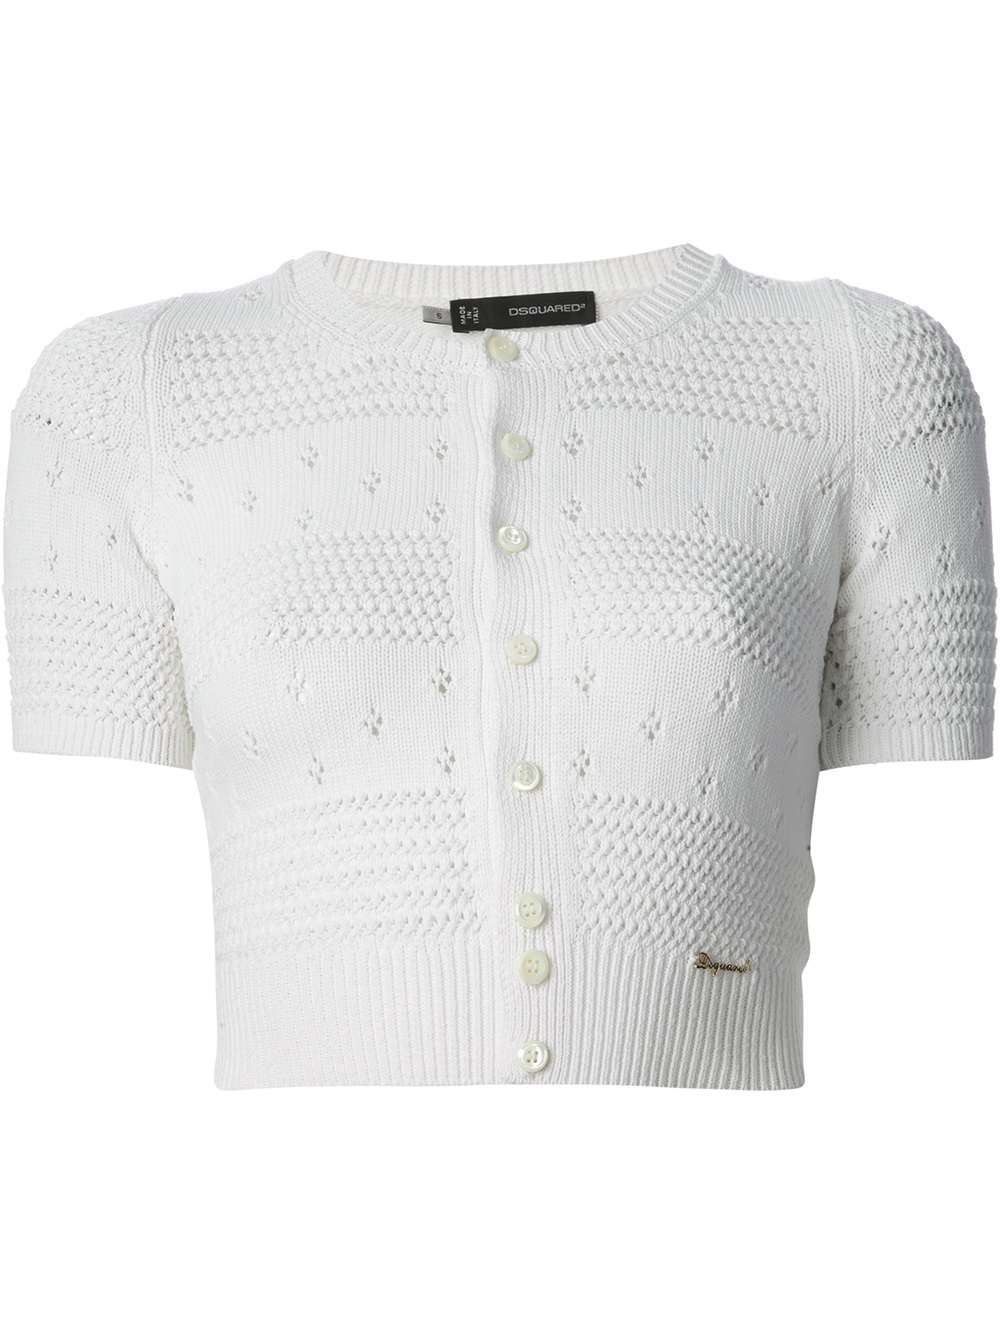 Dsquared² Cropped Cardigan in White | Lyst